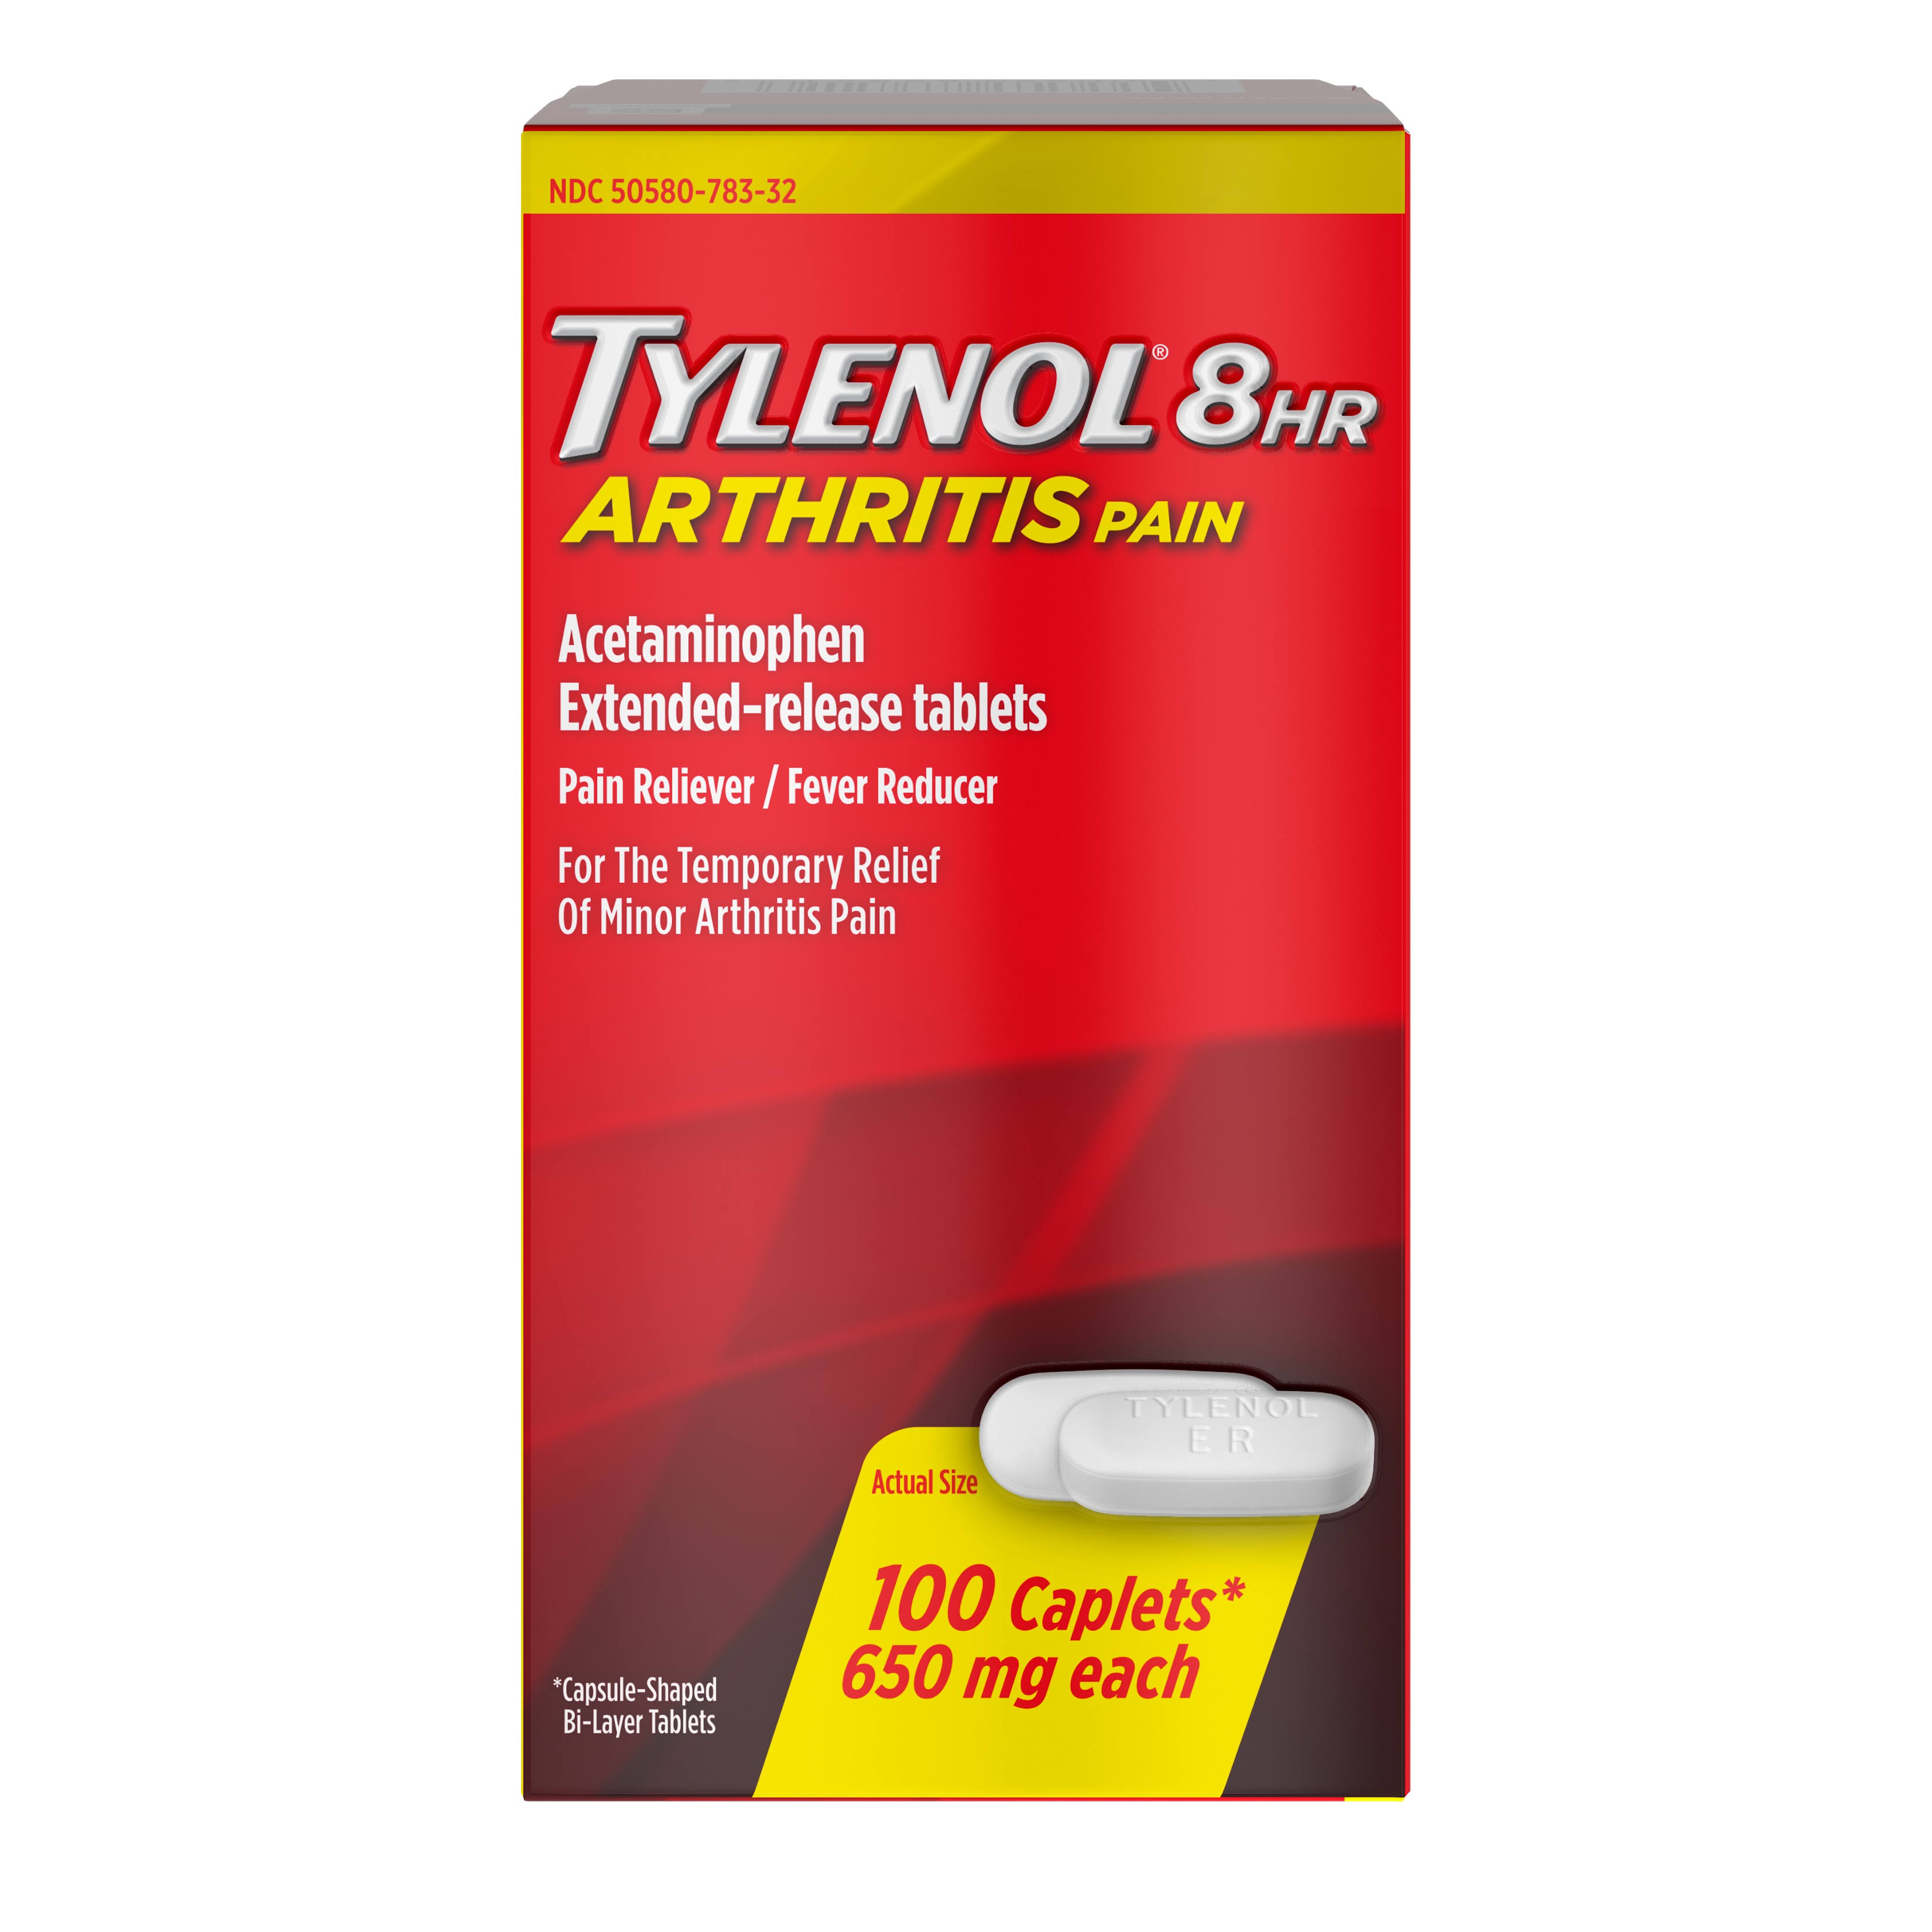 Tylenol 8hr Arthritis Pain Acetaminophen Extended-Release Tablets - 650mg, 100 Caplets